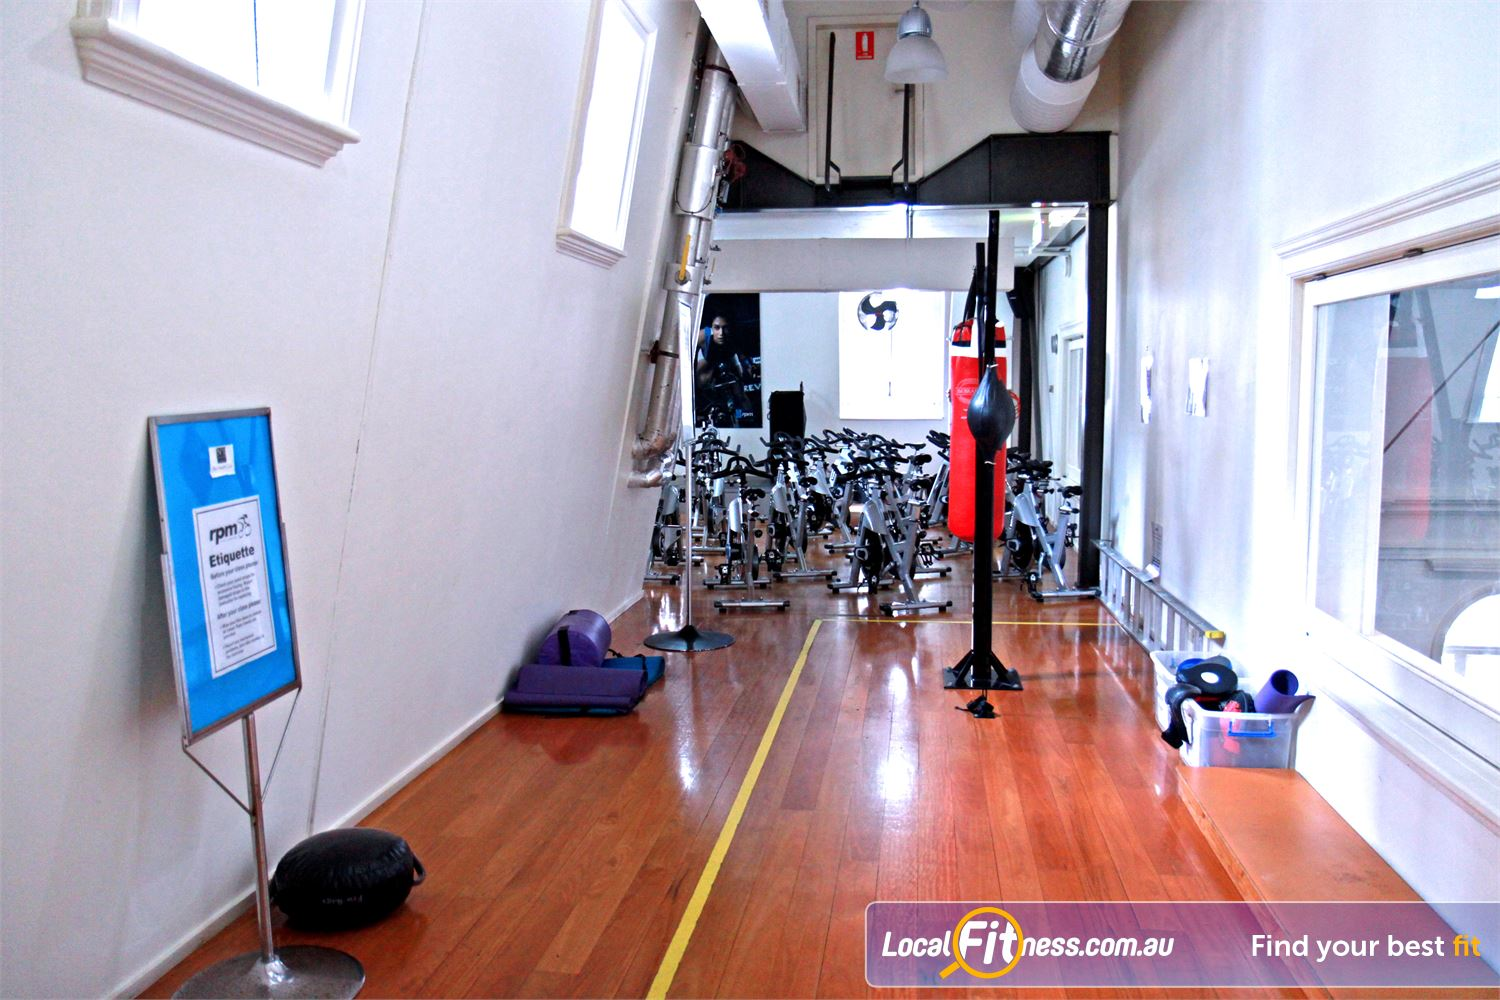 Goodlife health clubs martin place boxing area sydney